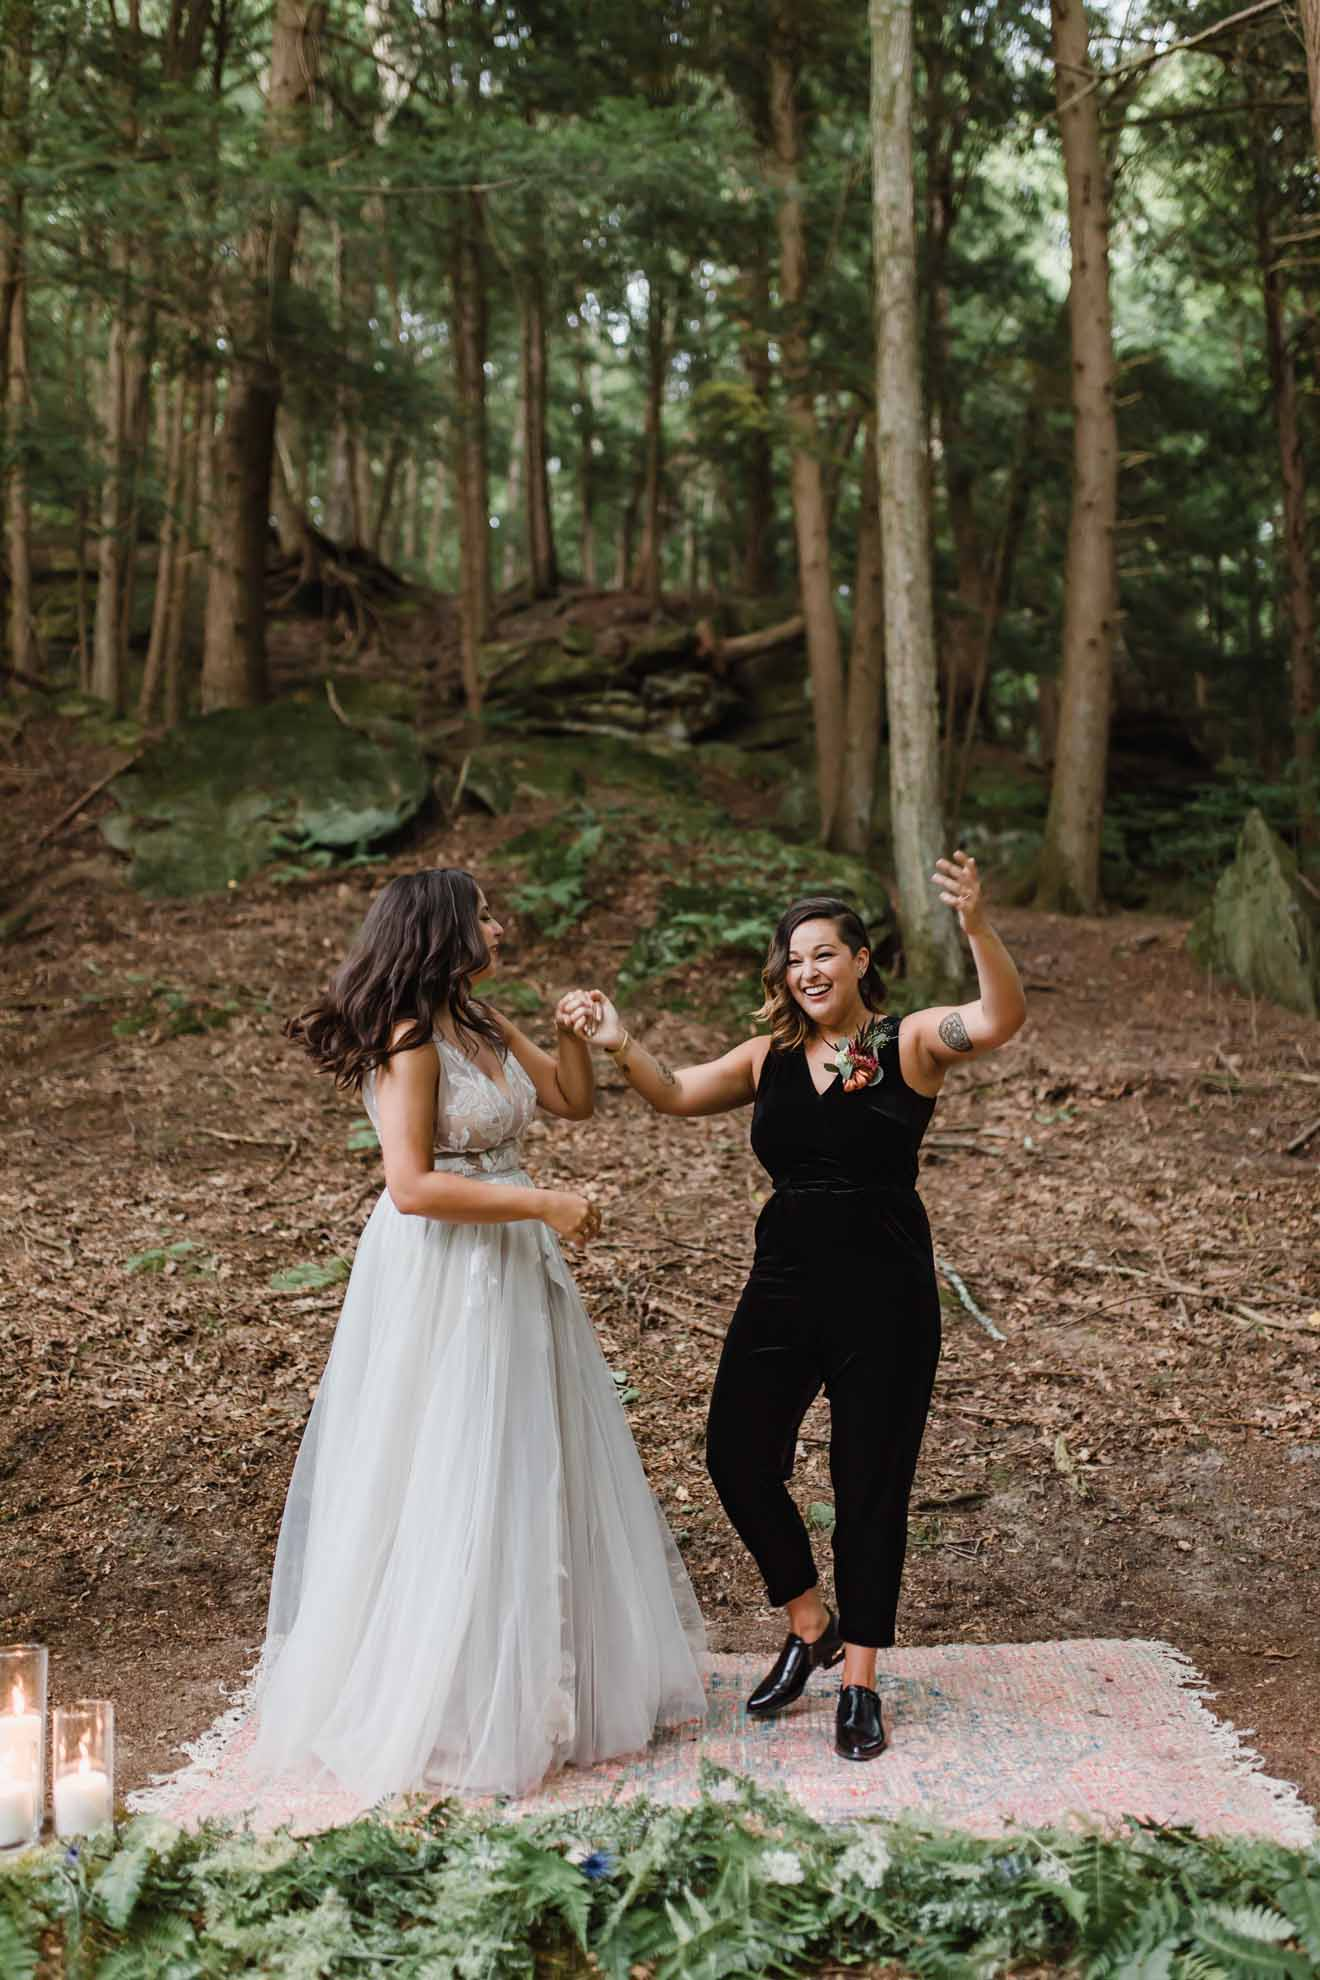 Fox and Twig photography Ohio American USA lesbian same-sex two brides mrs & mrs wedding marriage Dancing With Her worldwide magazine (1)